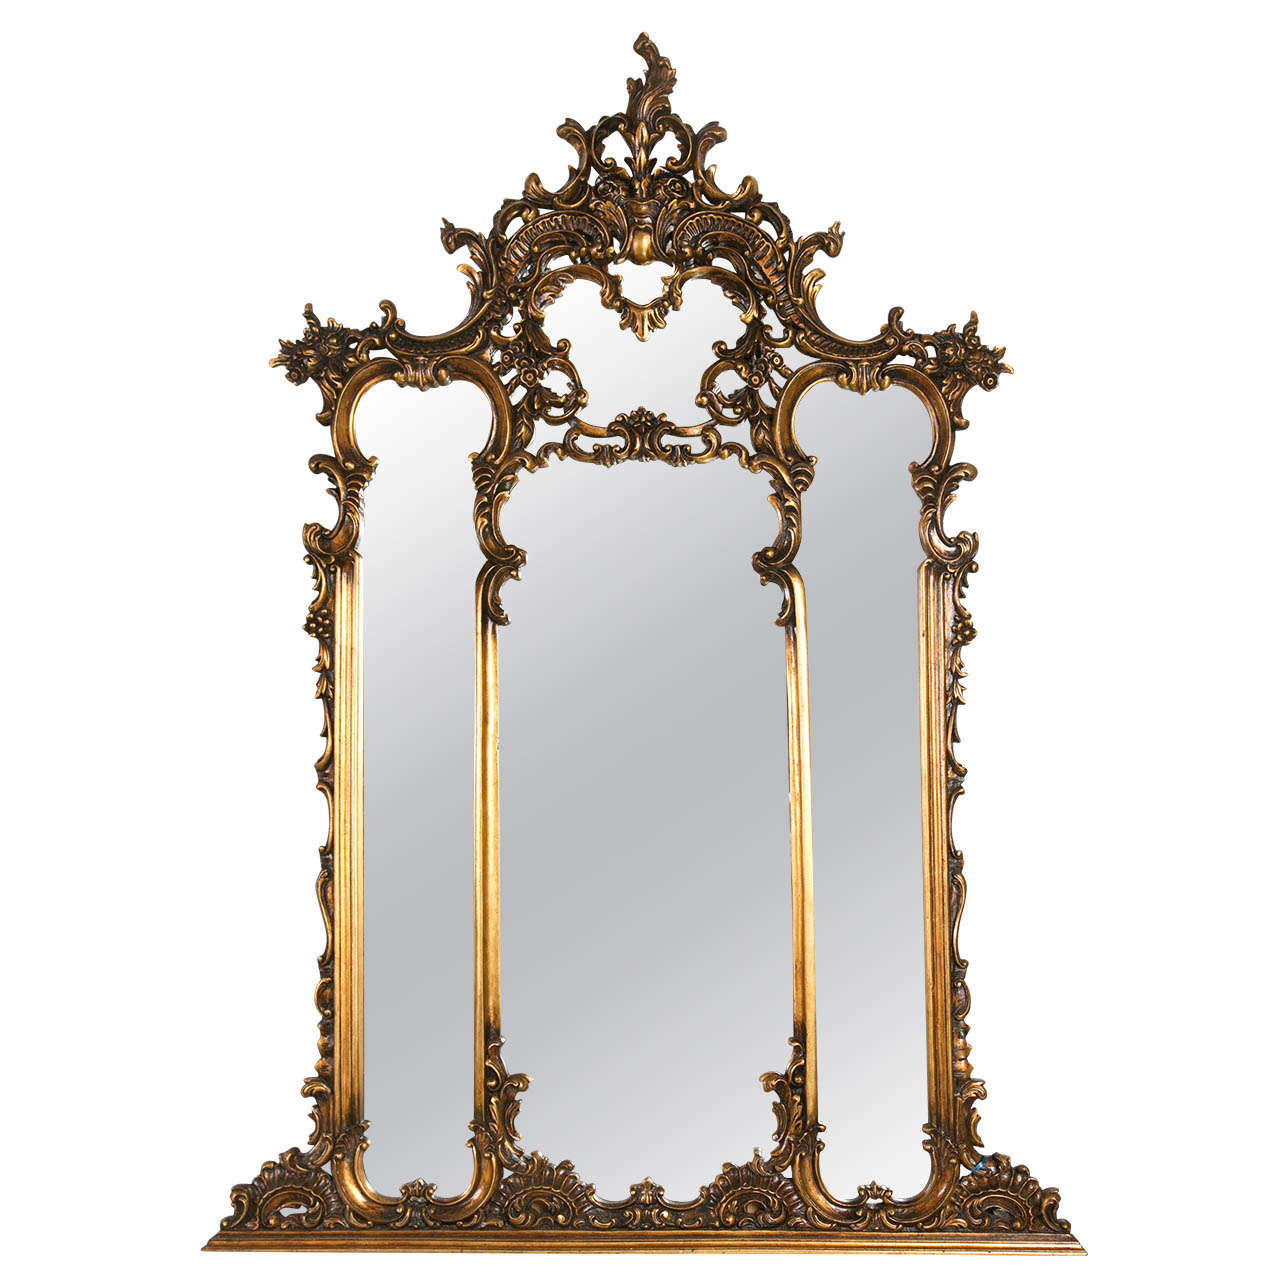 Fine french carved over the mantle mirror for sale at 1stdibs for Mantel mirrors